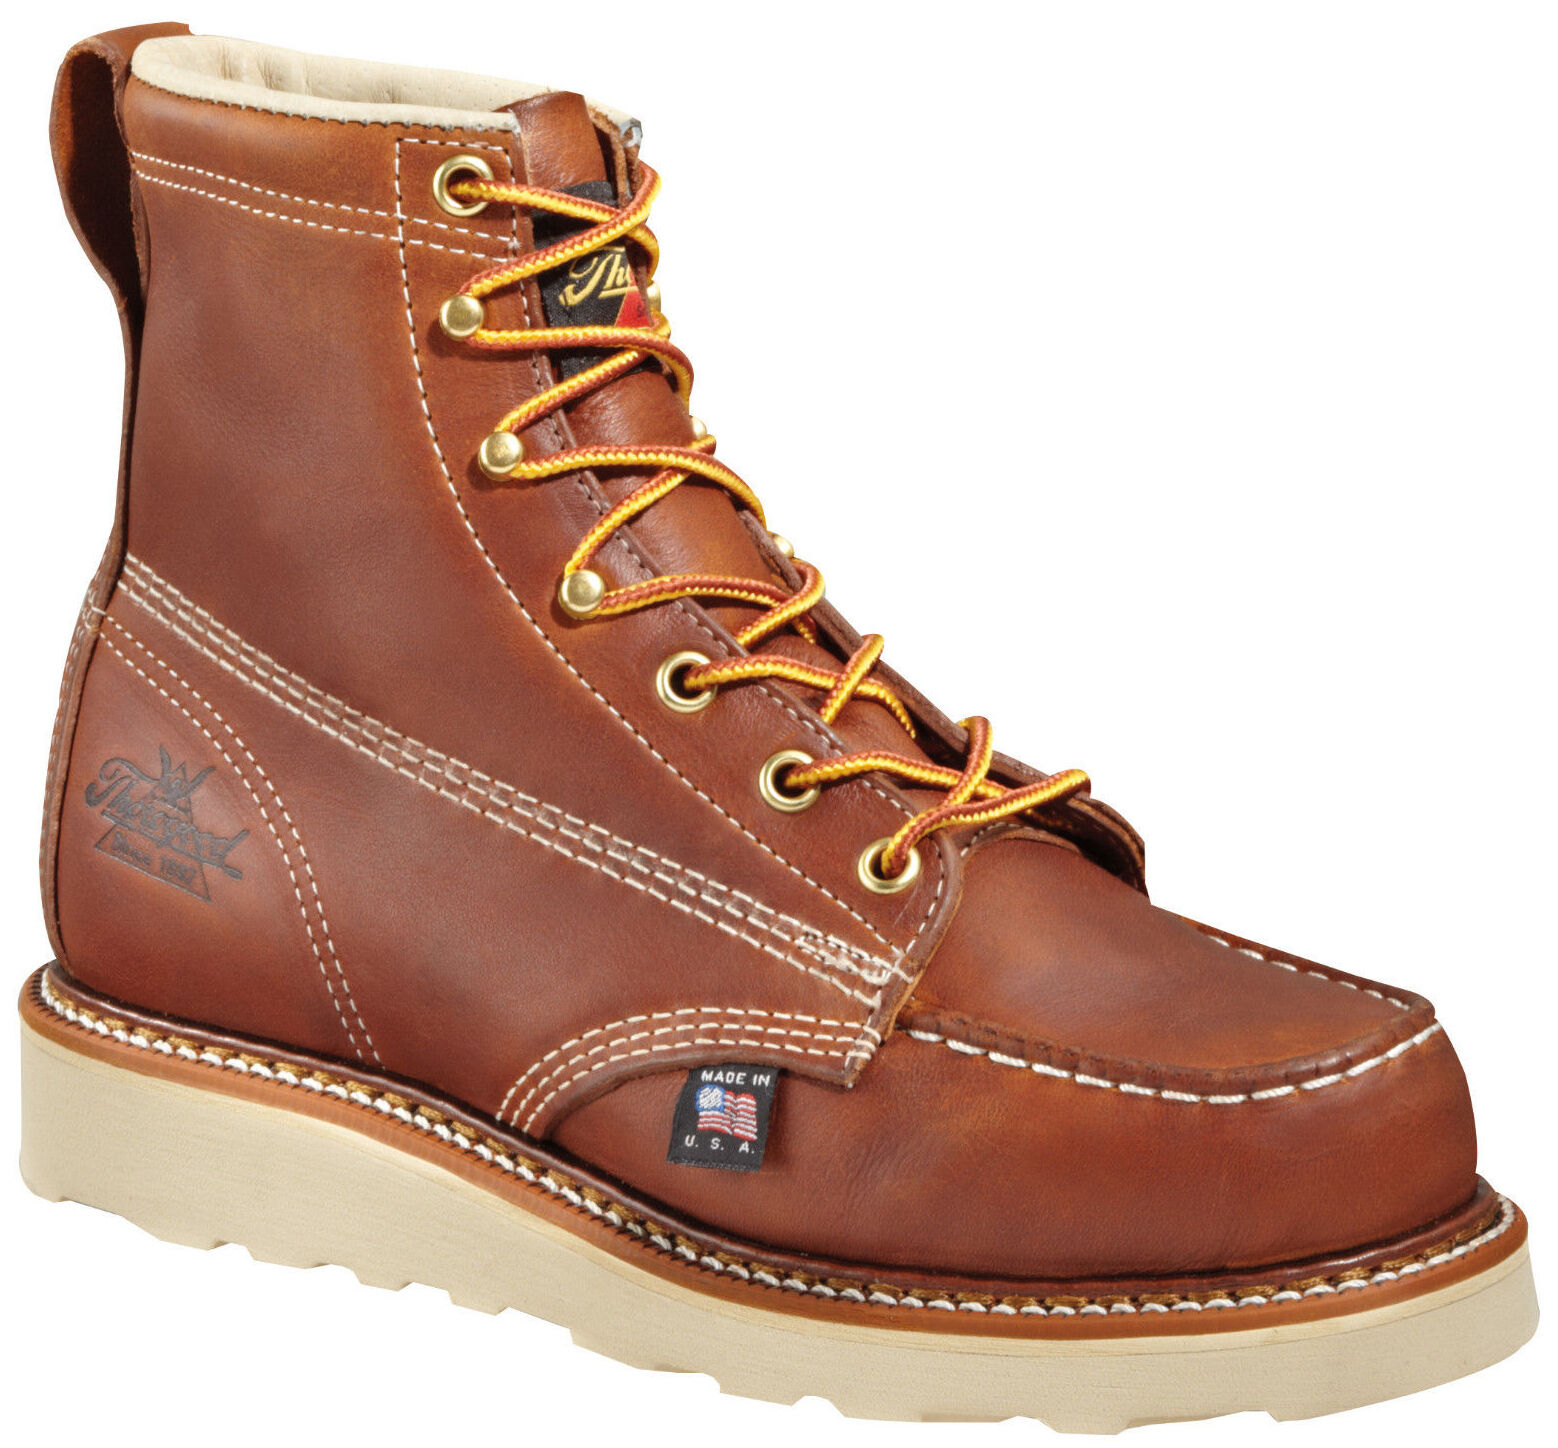 Top 10 Work Boots Ebay